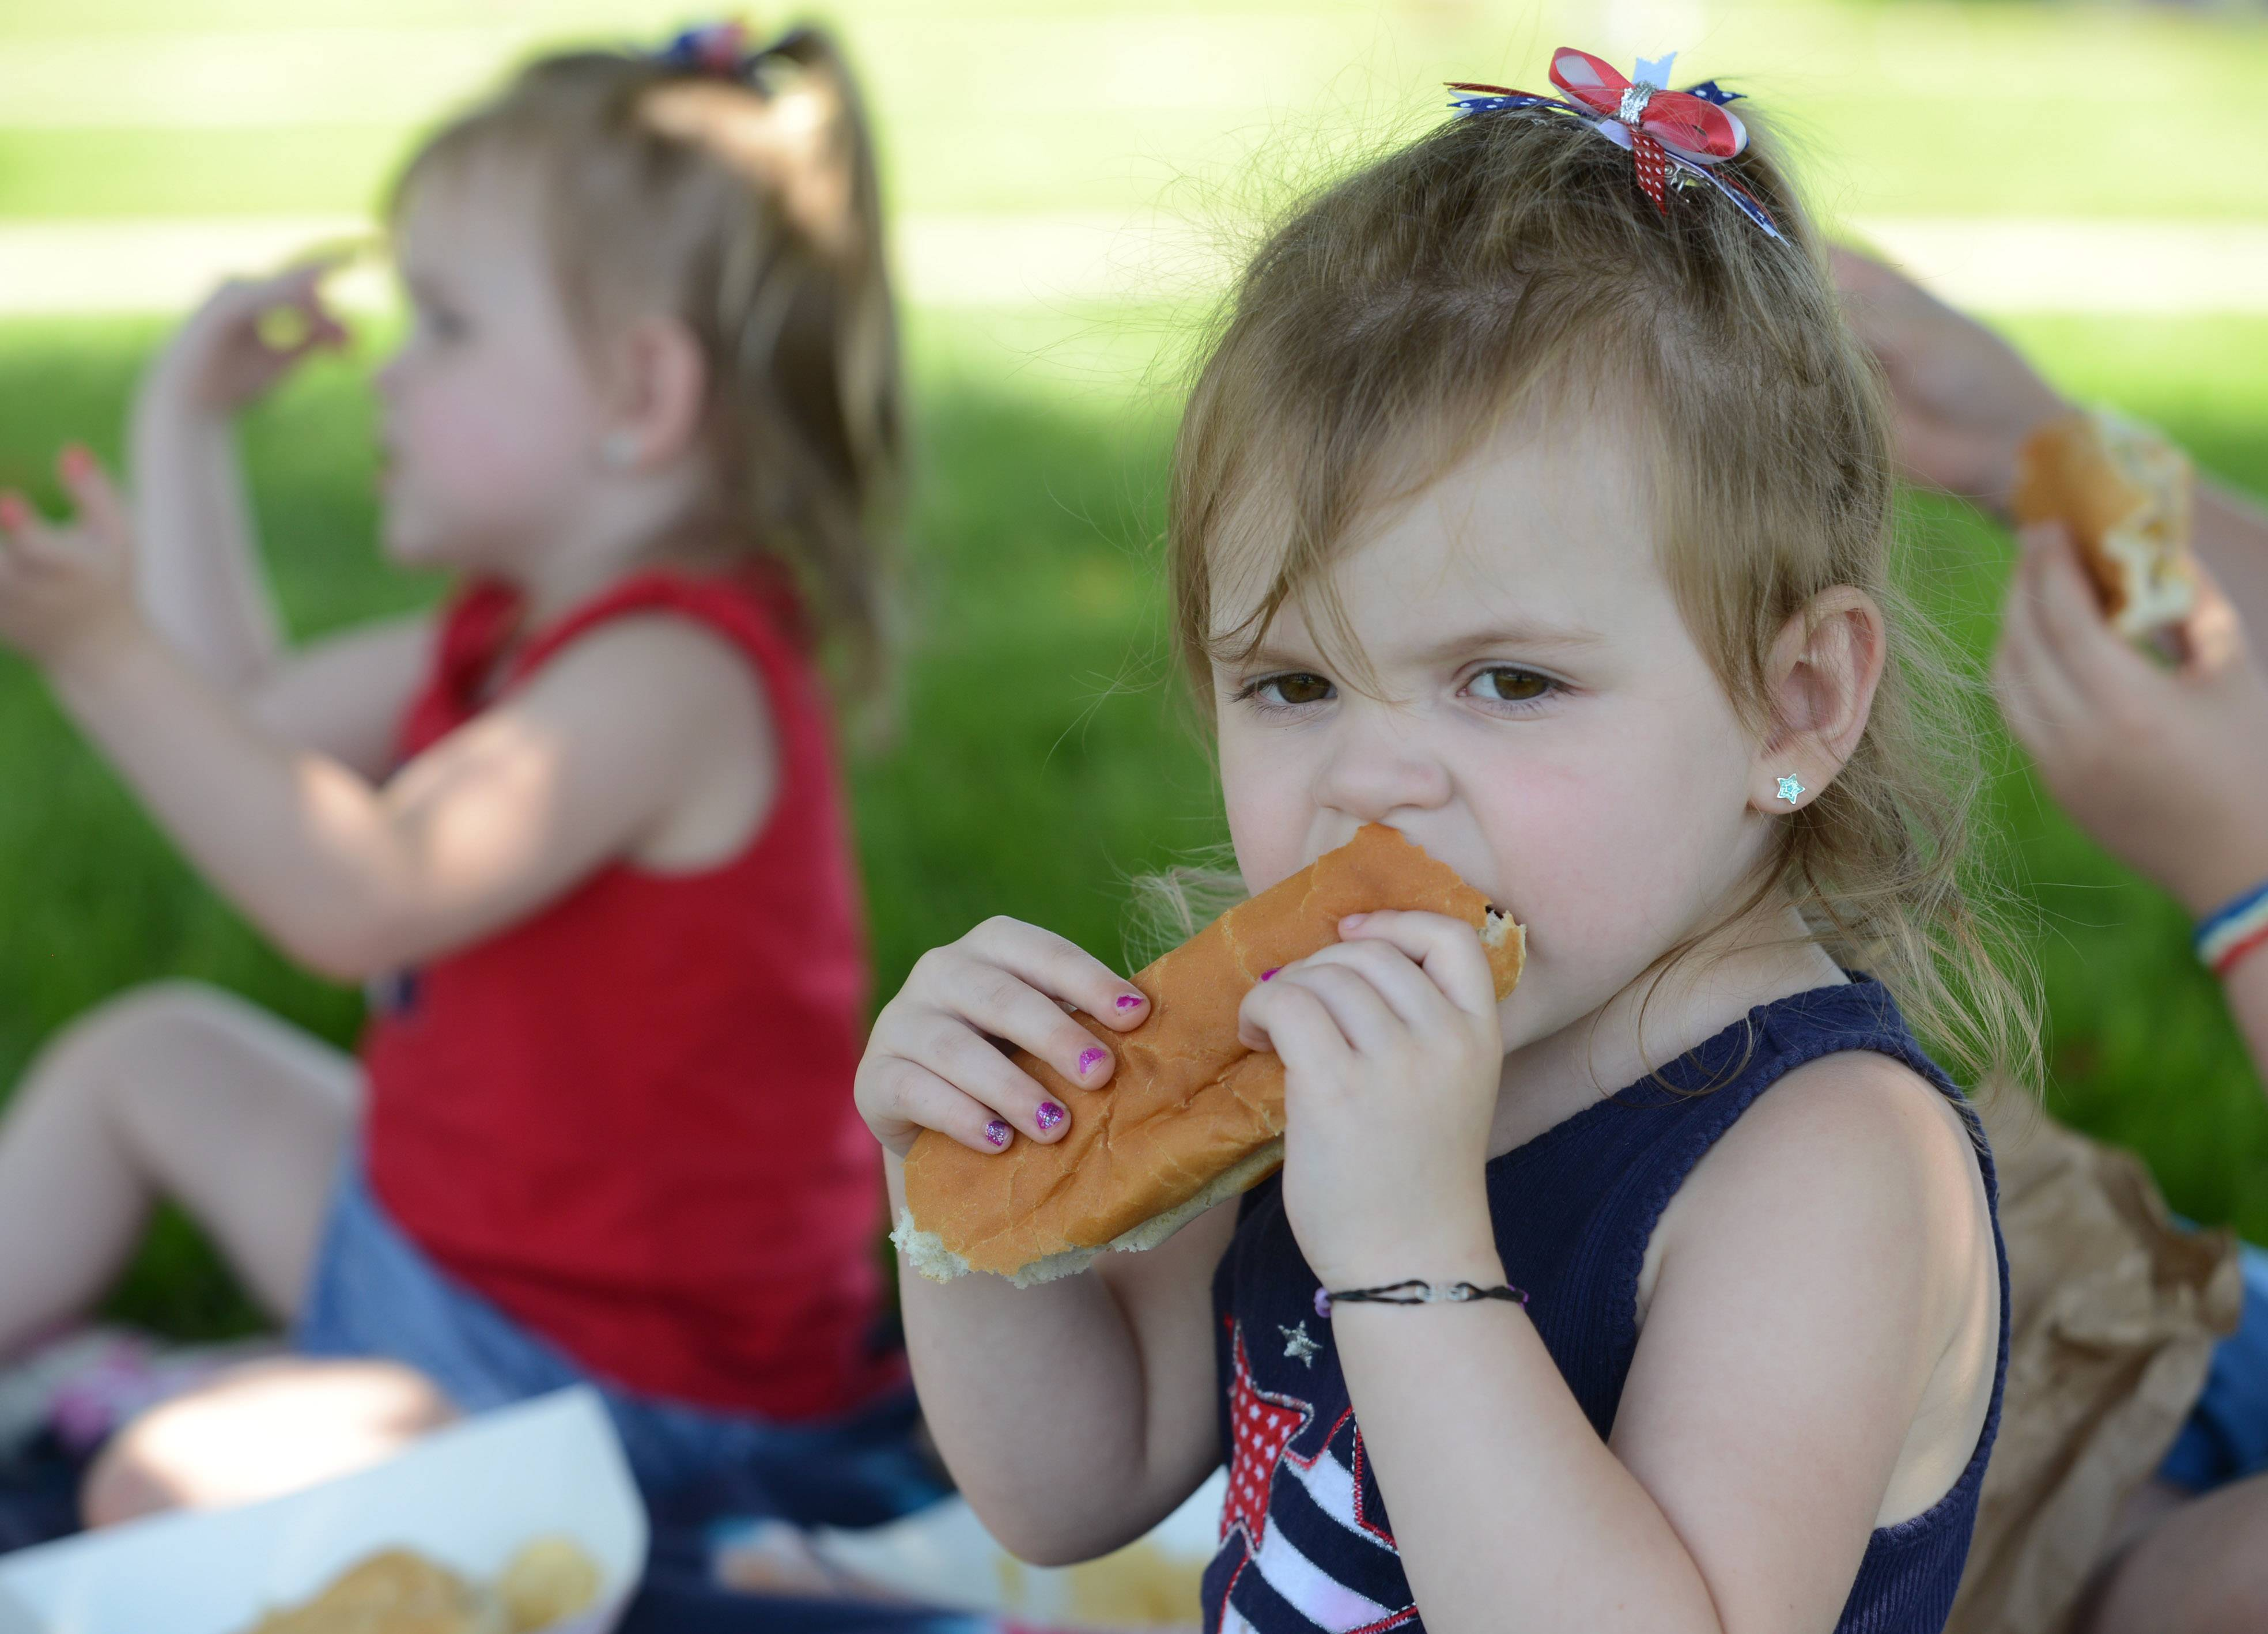 Madison Carr, age 3, digs into a hot dog along with her twin sister Sara, left, during Friday's Island Lake town picnic in Veterans Park.